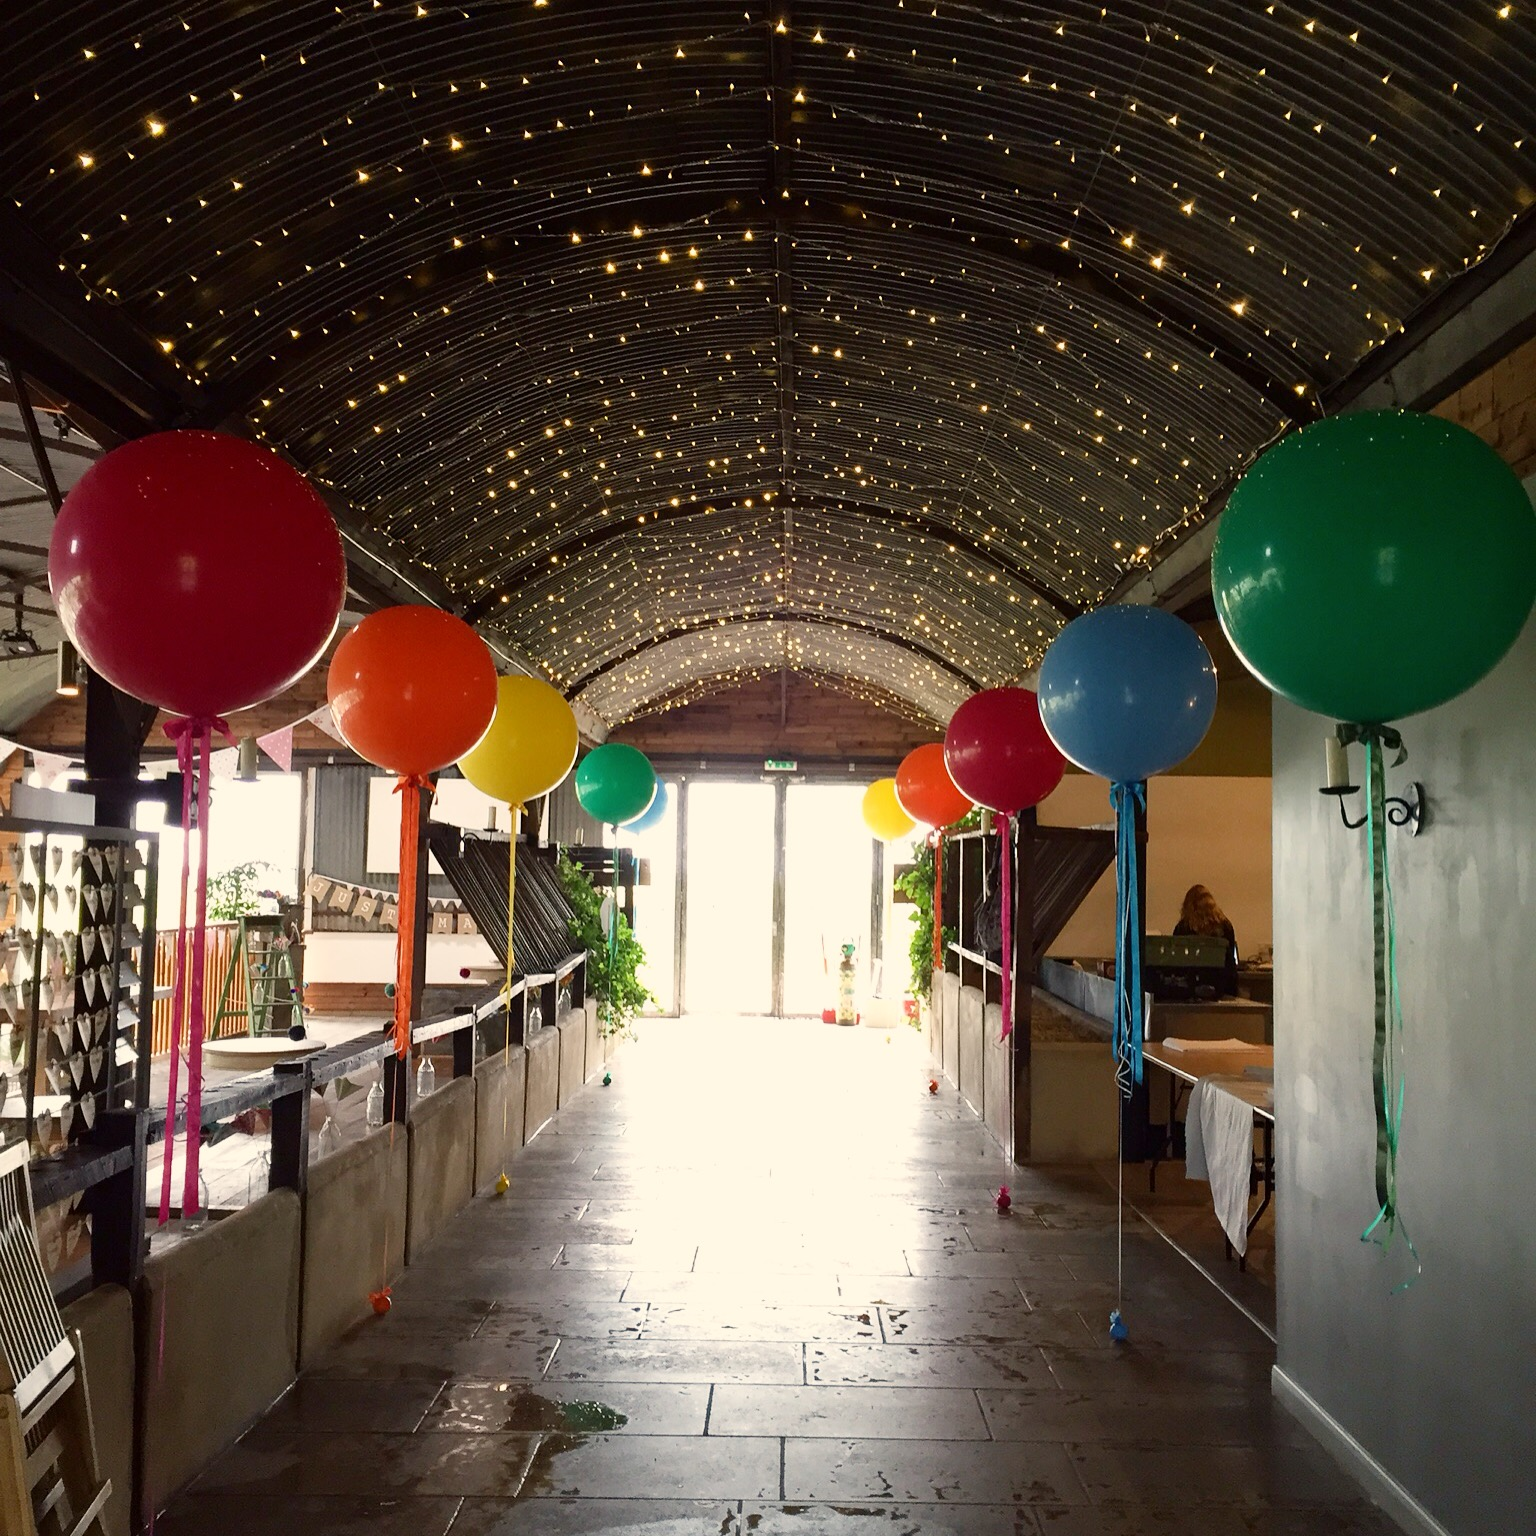 Stone Barn Giant Balloon Aisle